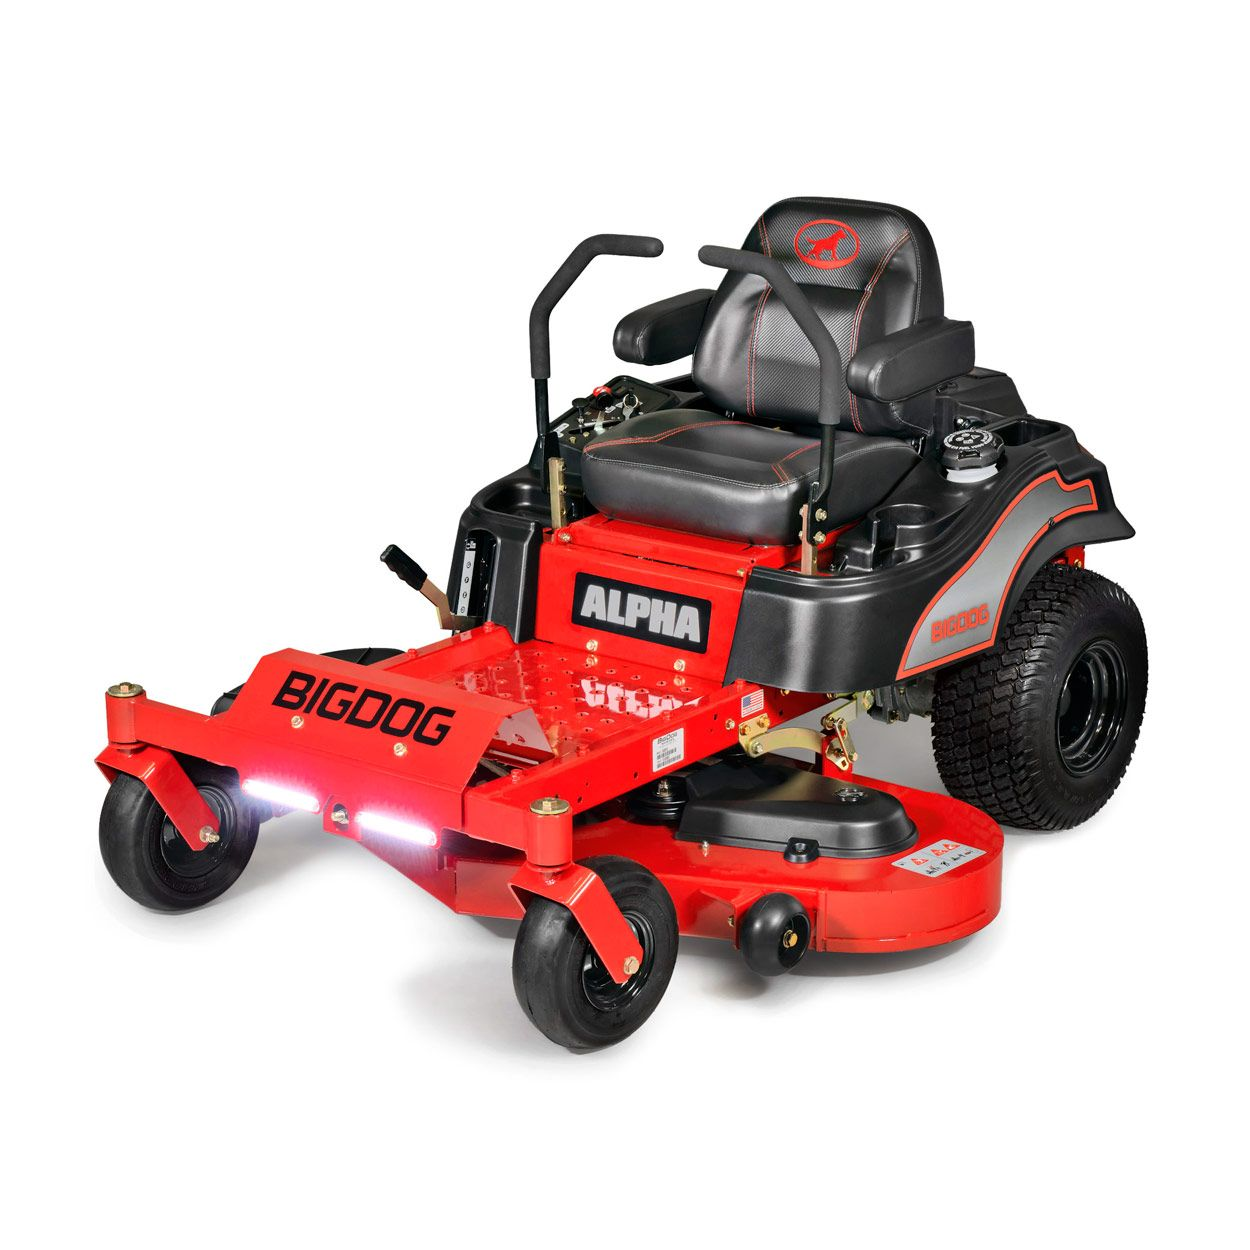 2015 Big Dog Mowers Alpha 52 in. in Livingston, Texas